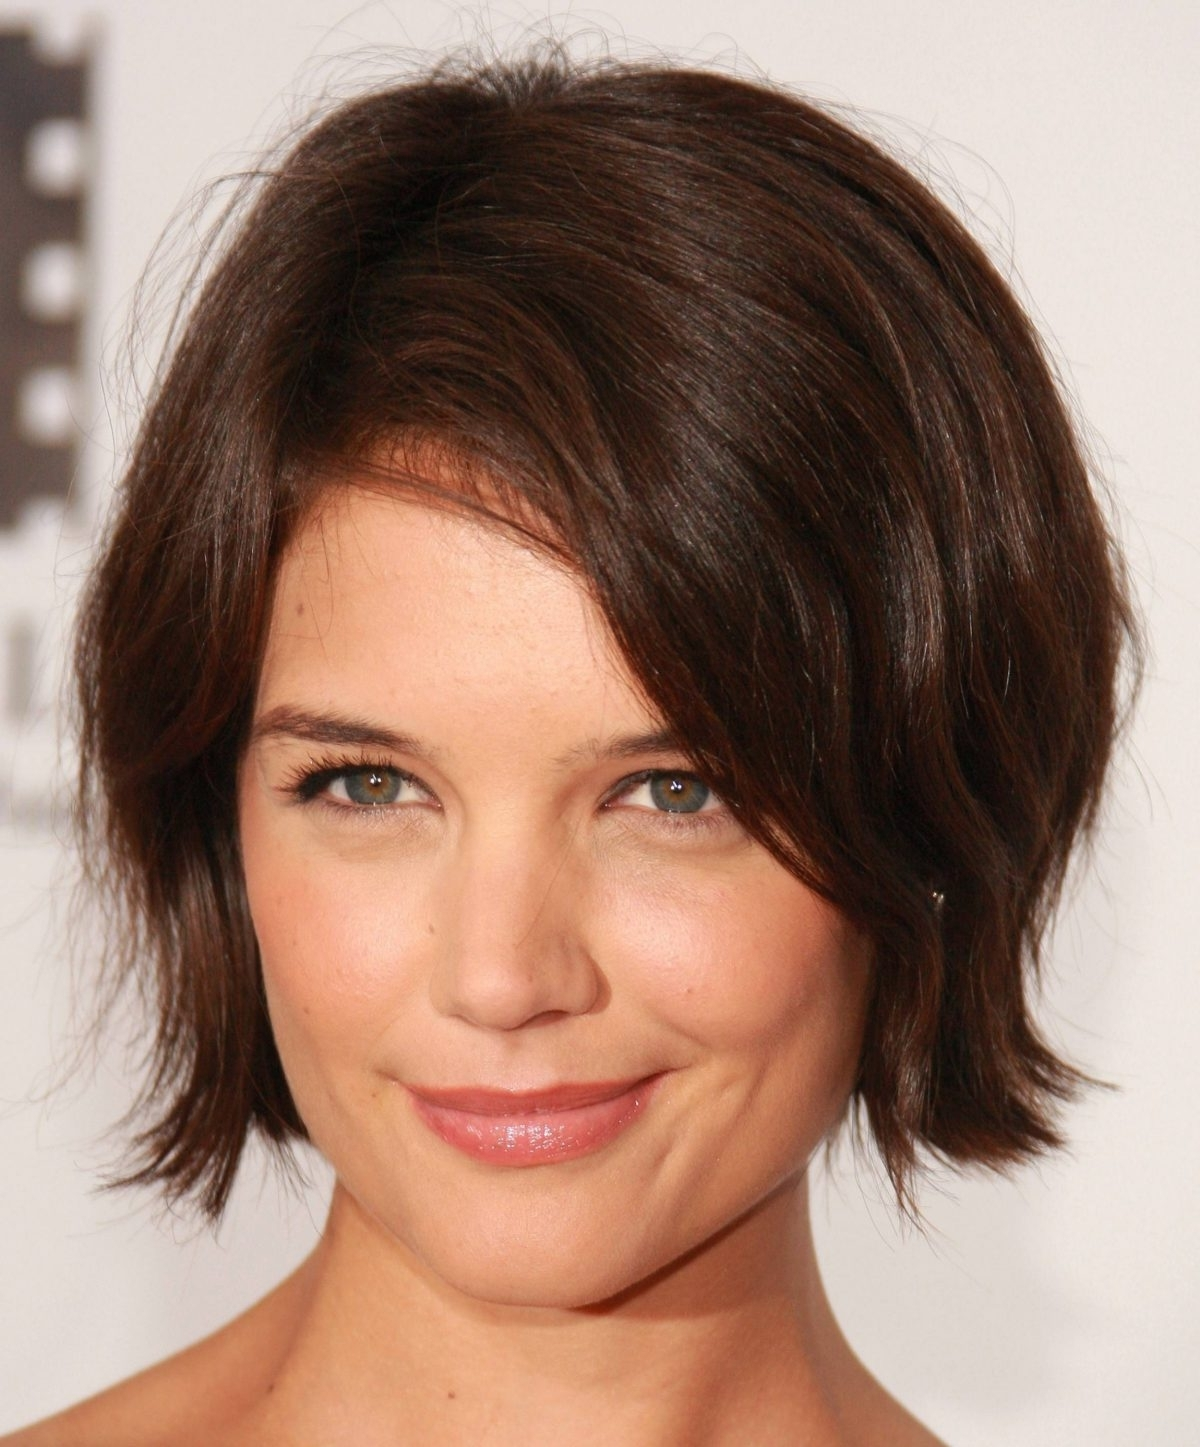 20 Photo of Asymmetrical Long Pixie Hairstyles For Round Faces